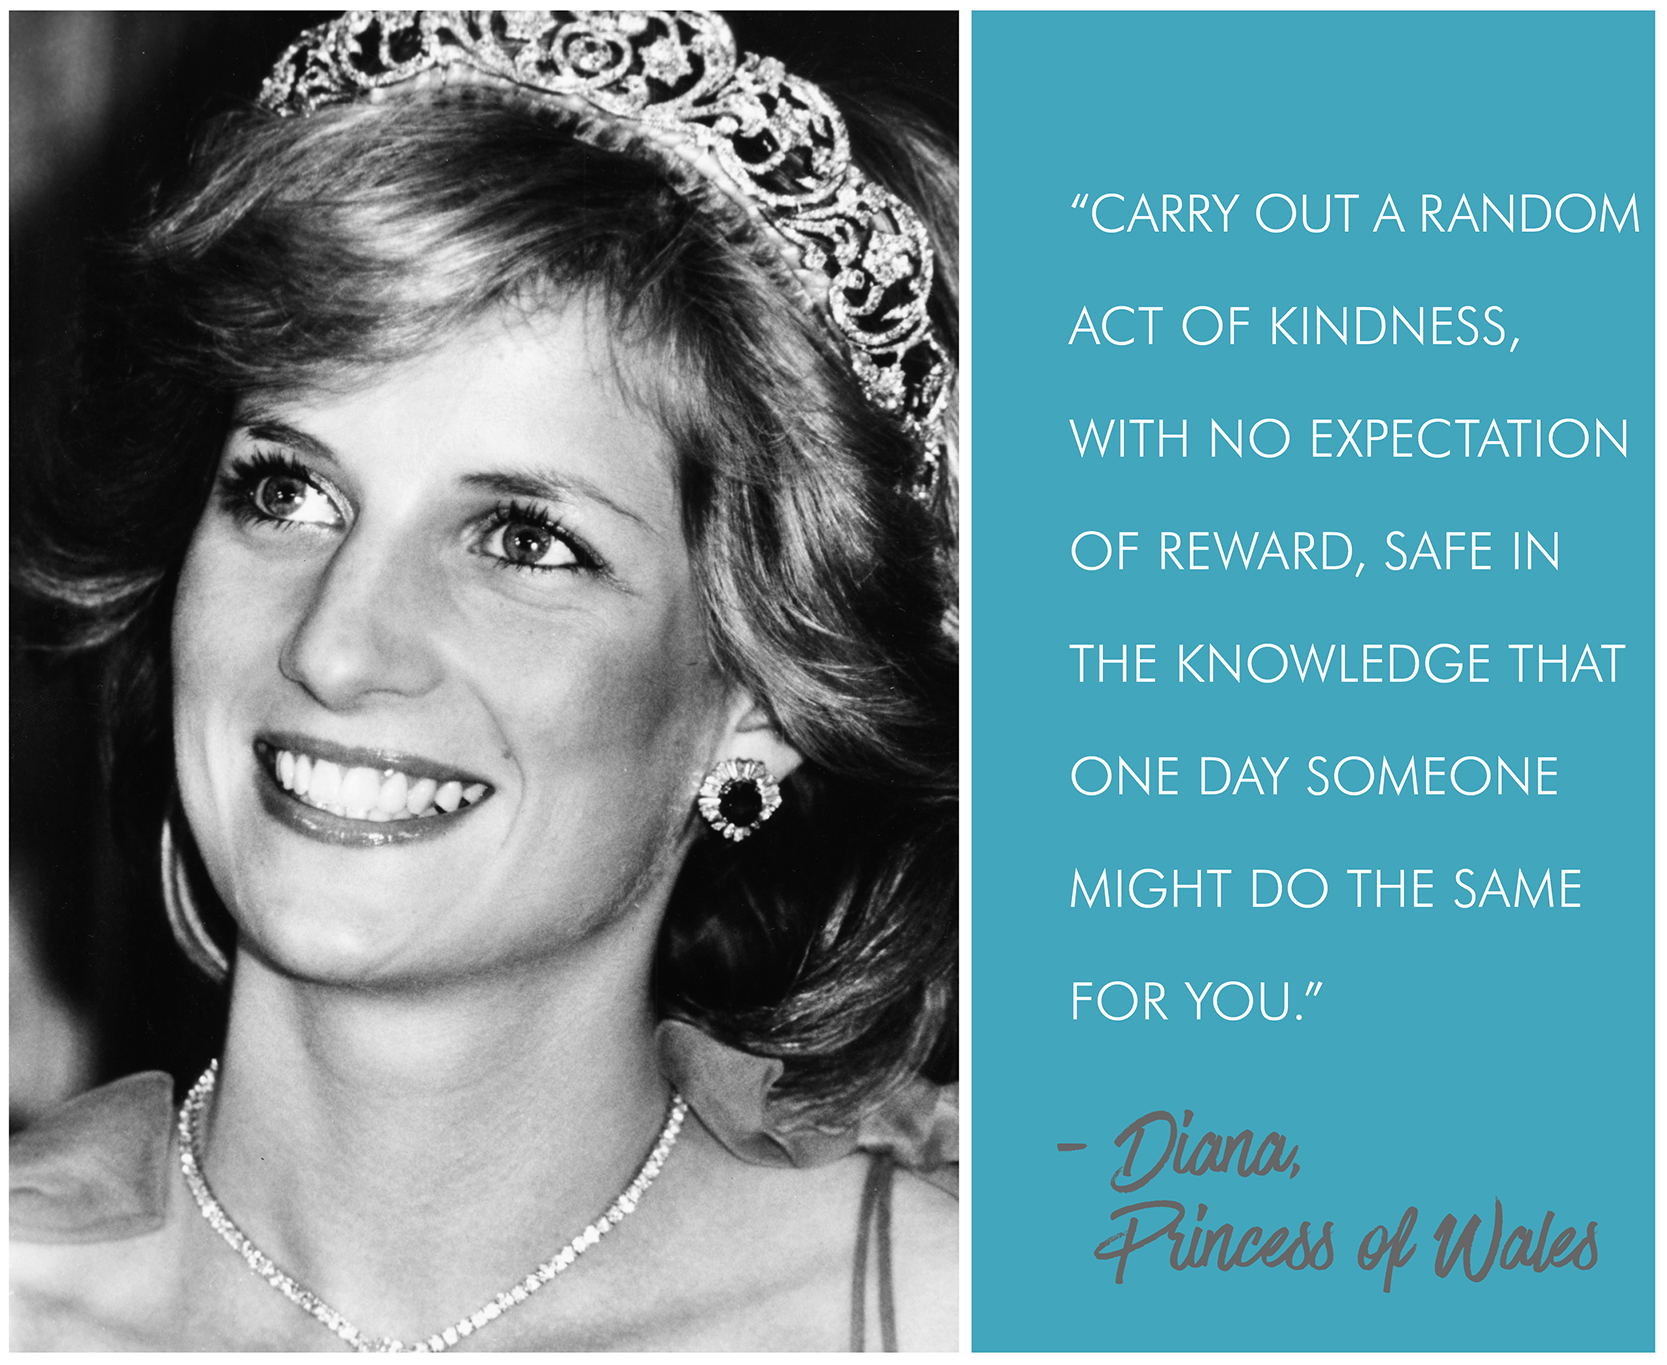 """""""Carry out a random act of kindness, with no expectation of reward, safe in the knowledge that one day someone might do the same for you.' - Diana, Princess of Wales"""